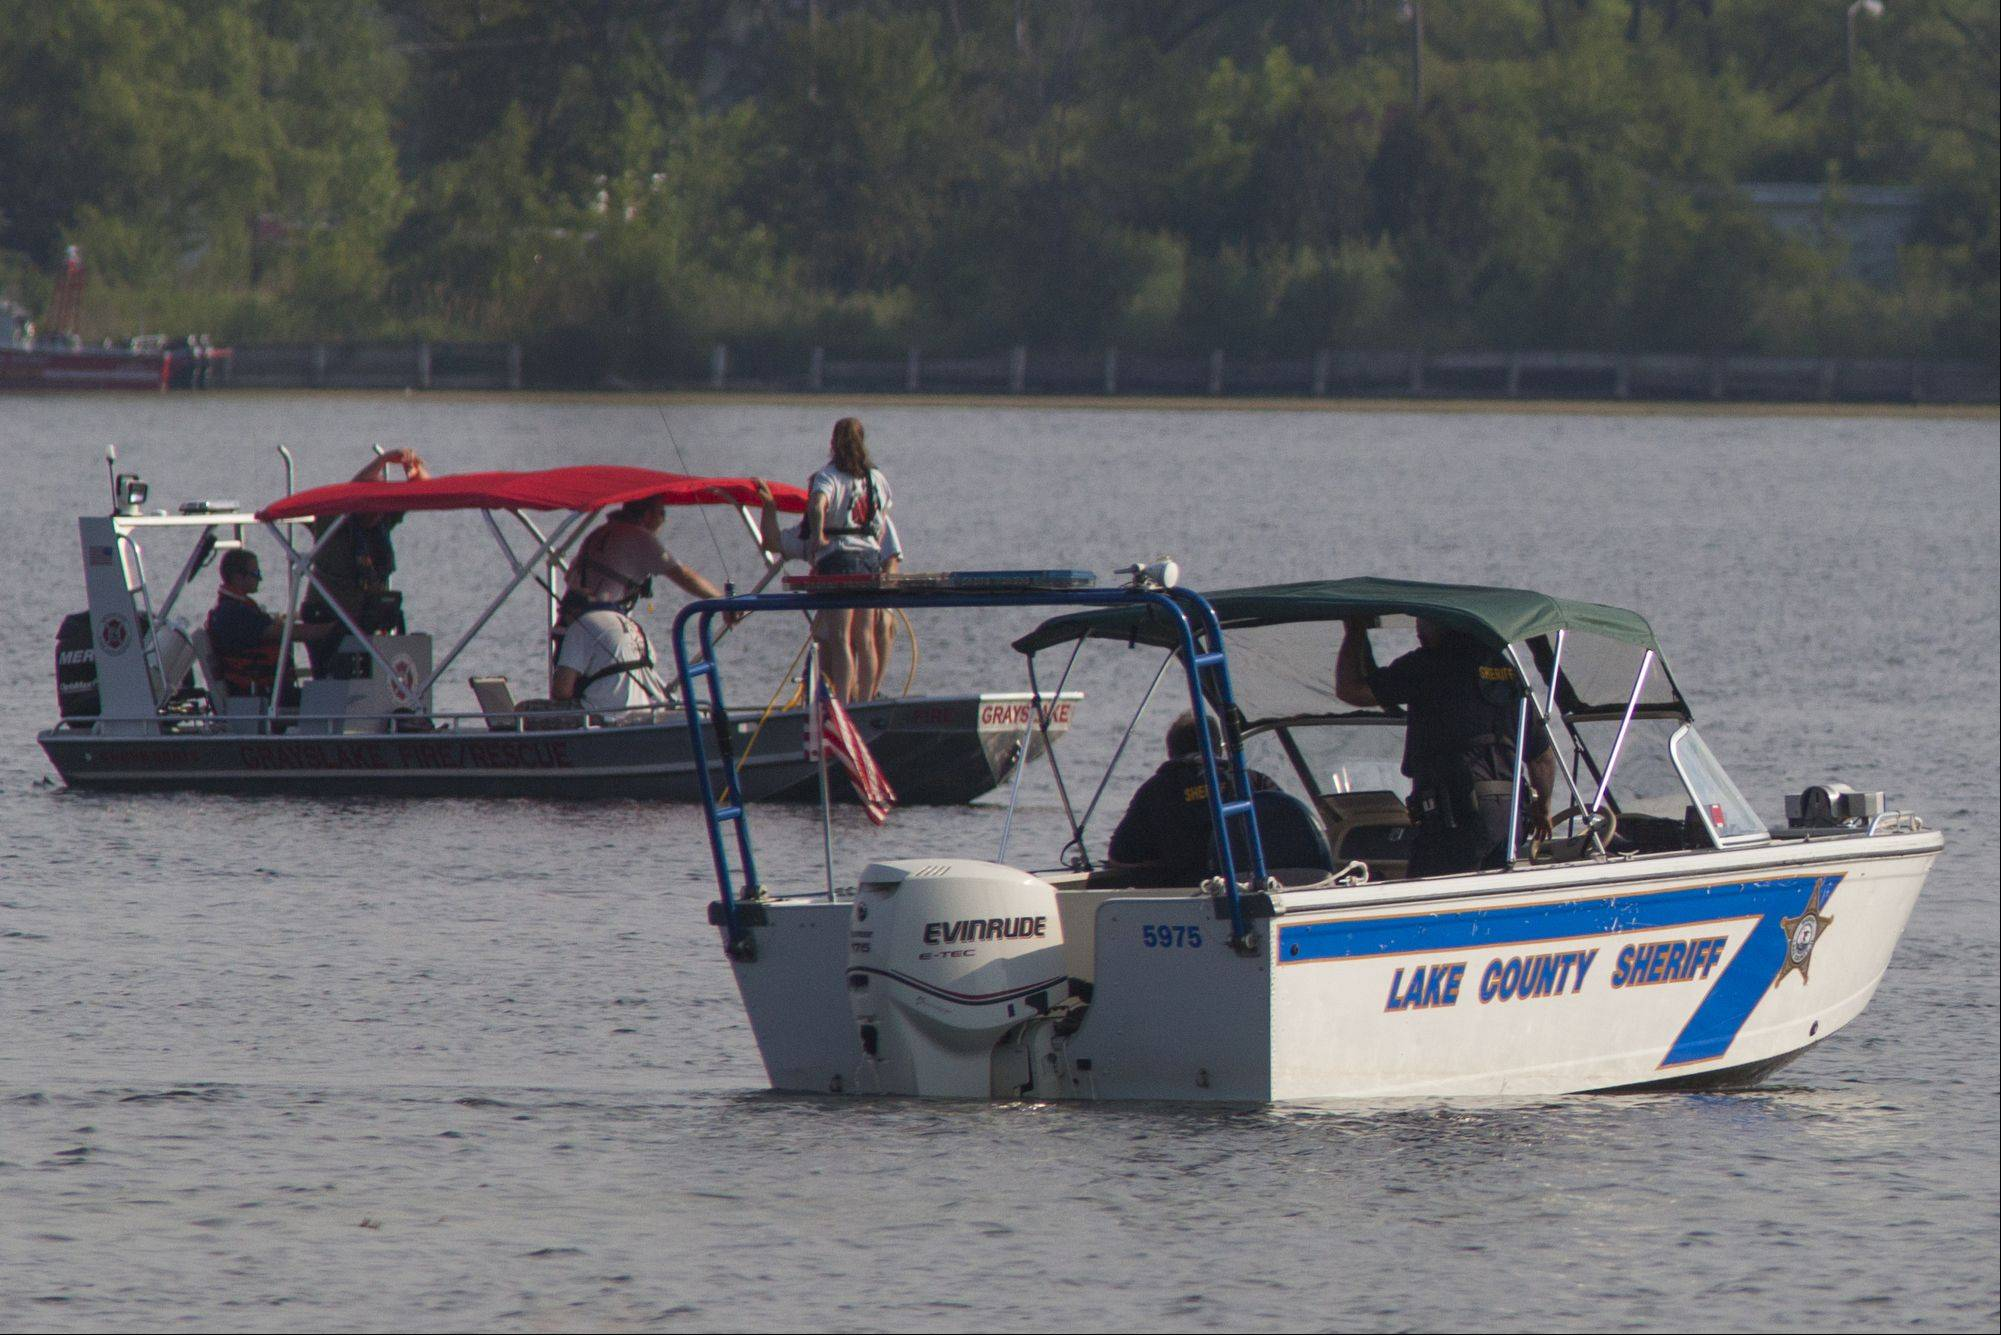 Lake County and Grayslake Emergency Response teams patrolled the Loon Lake yesterday for the body of a 62-year-old man who drowned. Crews are continuing their search this morning.